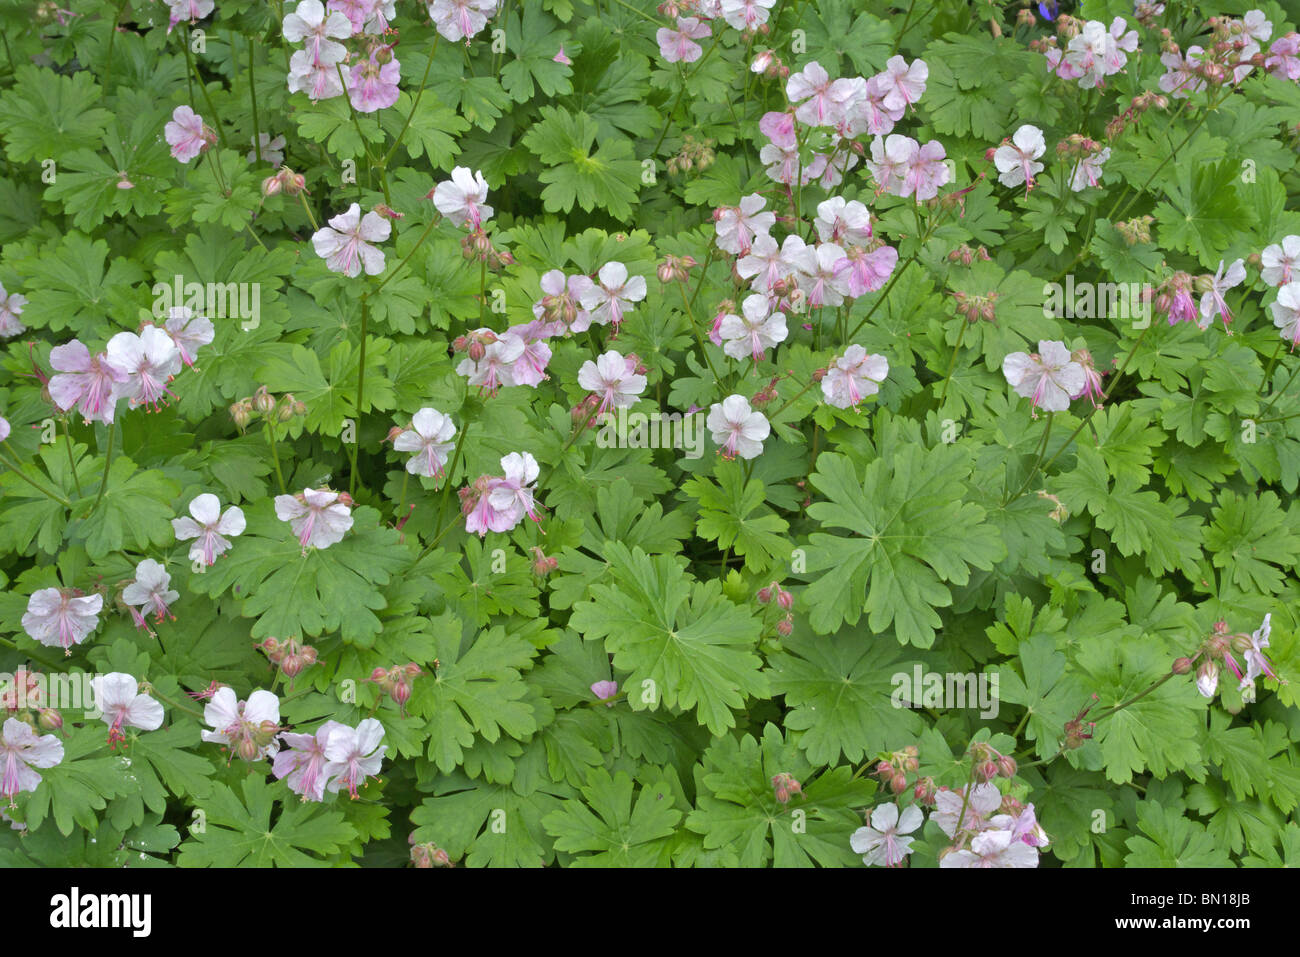 Perennial ground cover stock photos perennial ground cover stock geranium macrorrhizum an early summer flowering perennial ground cover plant stock image mightylinksfo